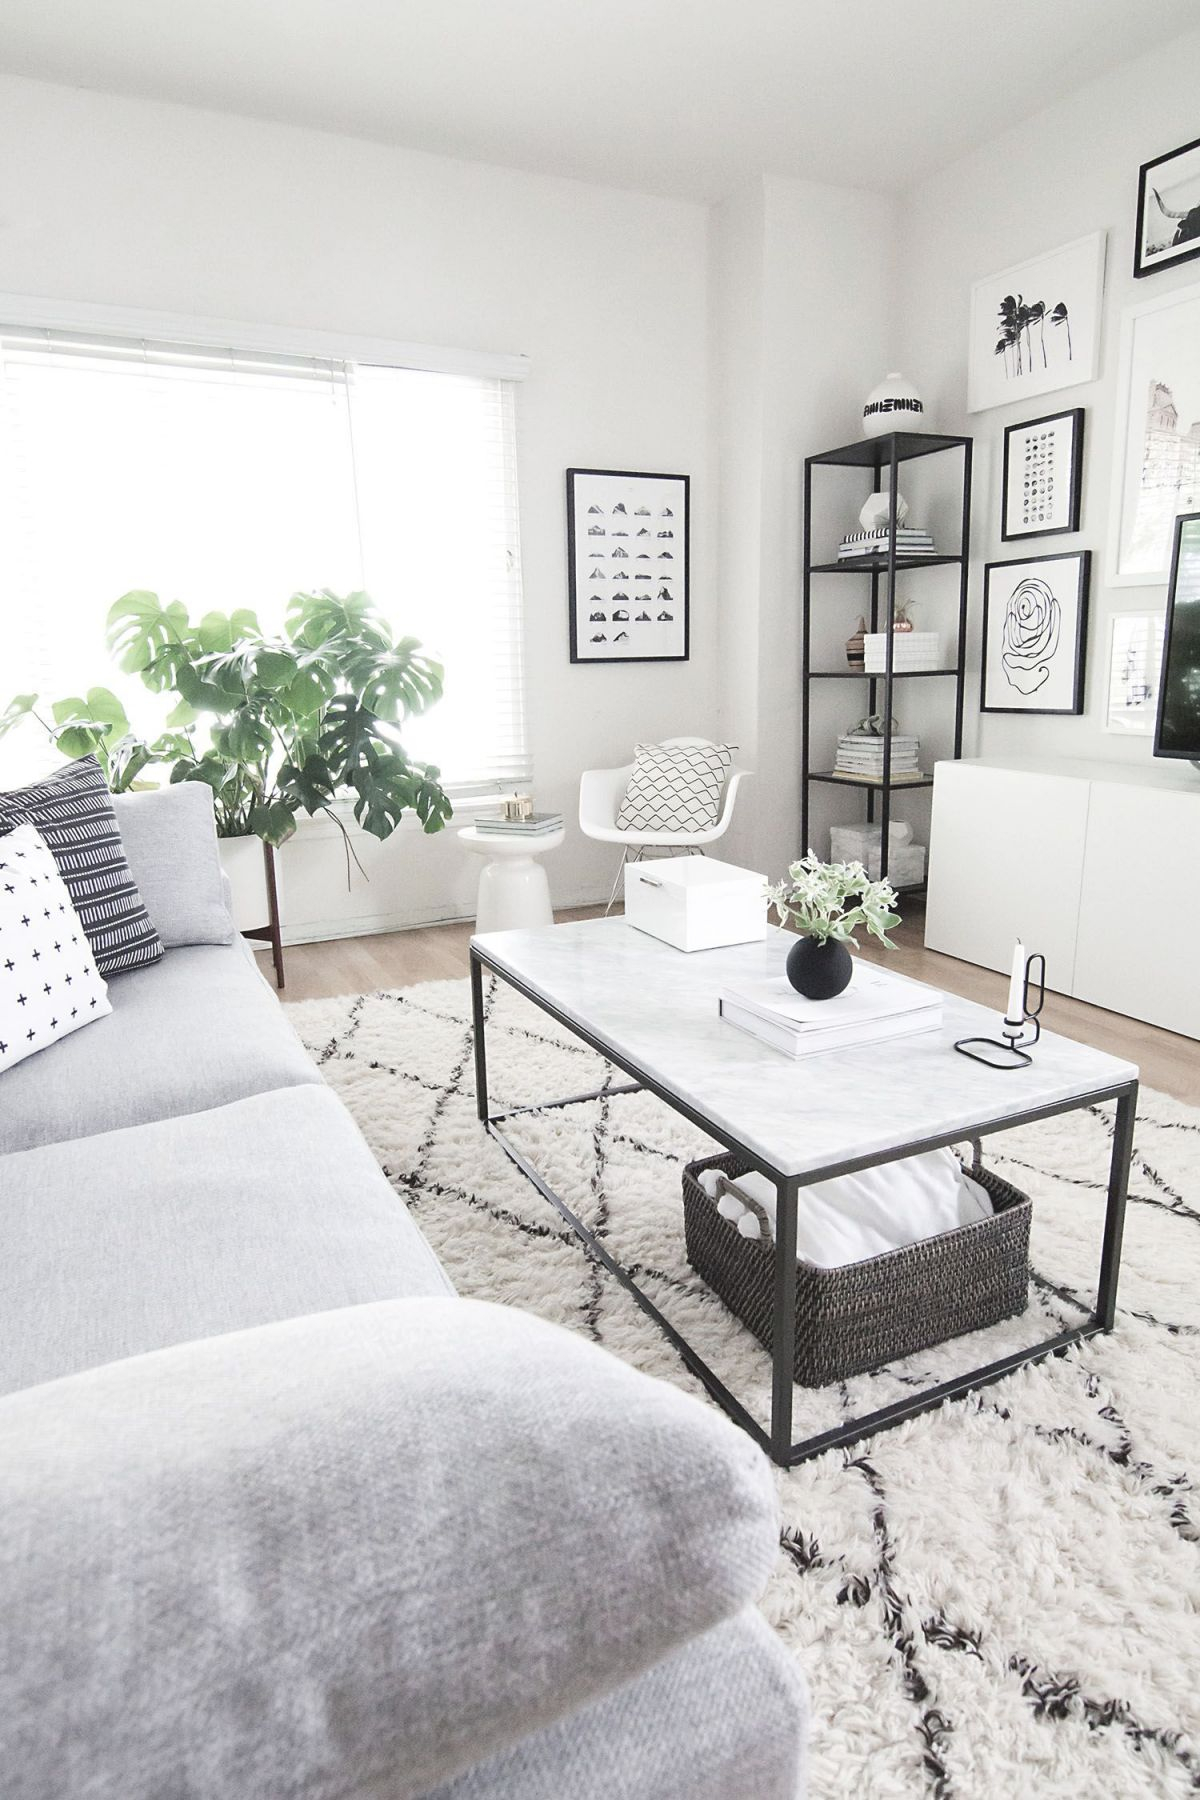 Coffee Table Styling | Room Decor, Living Room Decor, Decor with Elegant Monochrome Living Room Decorating Ideas